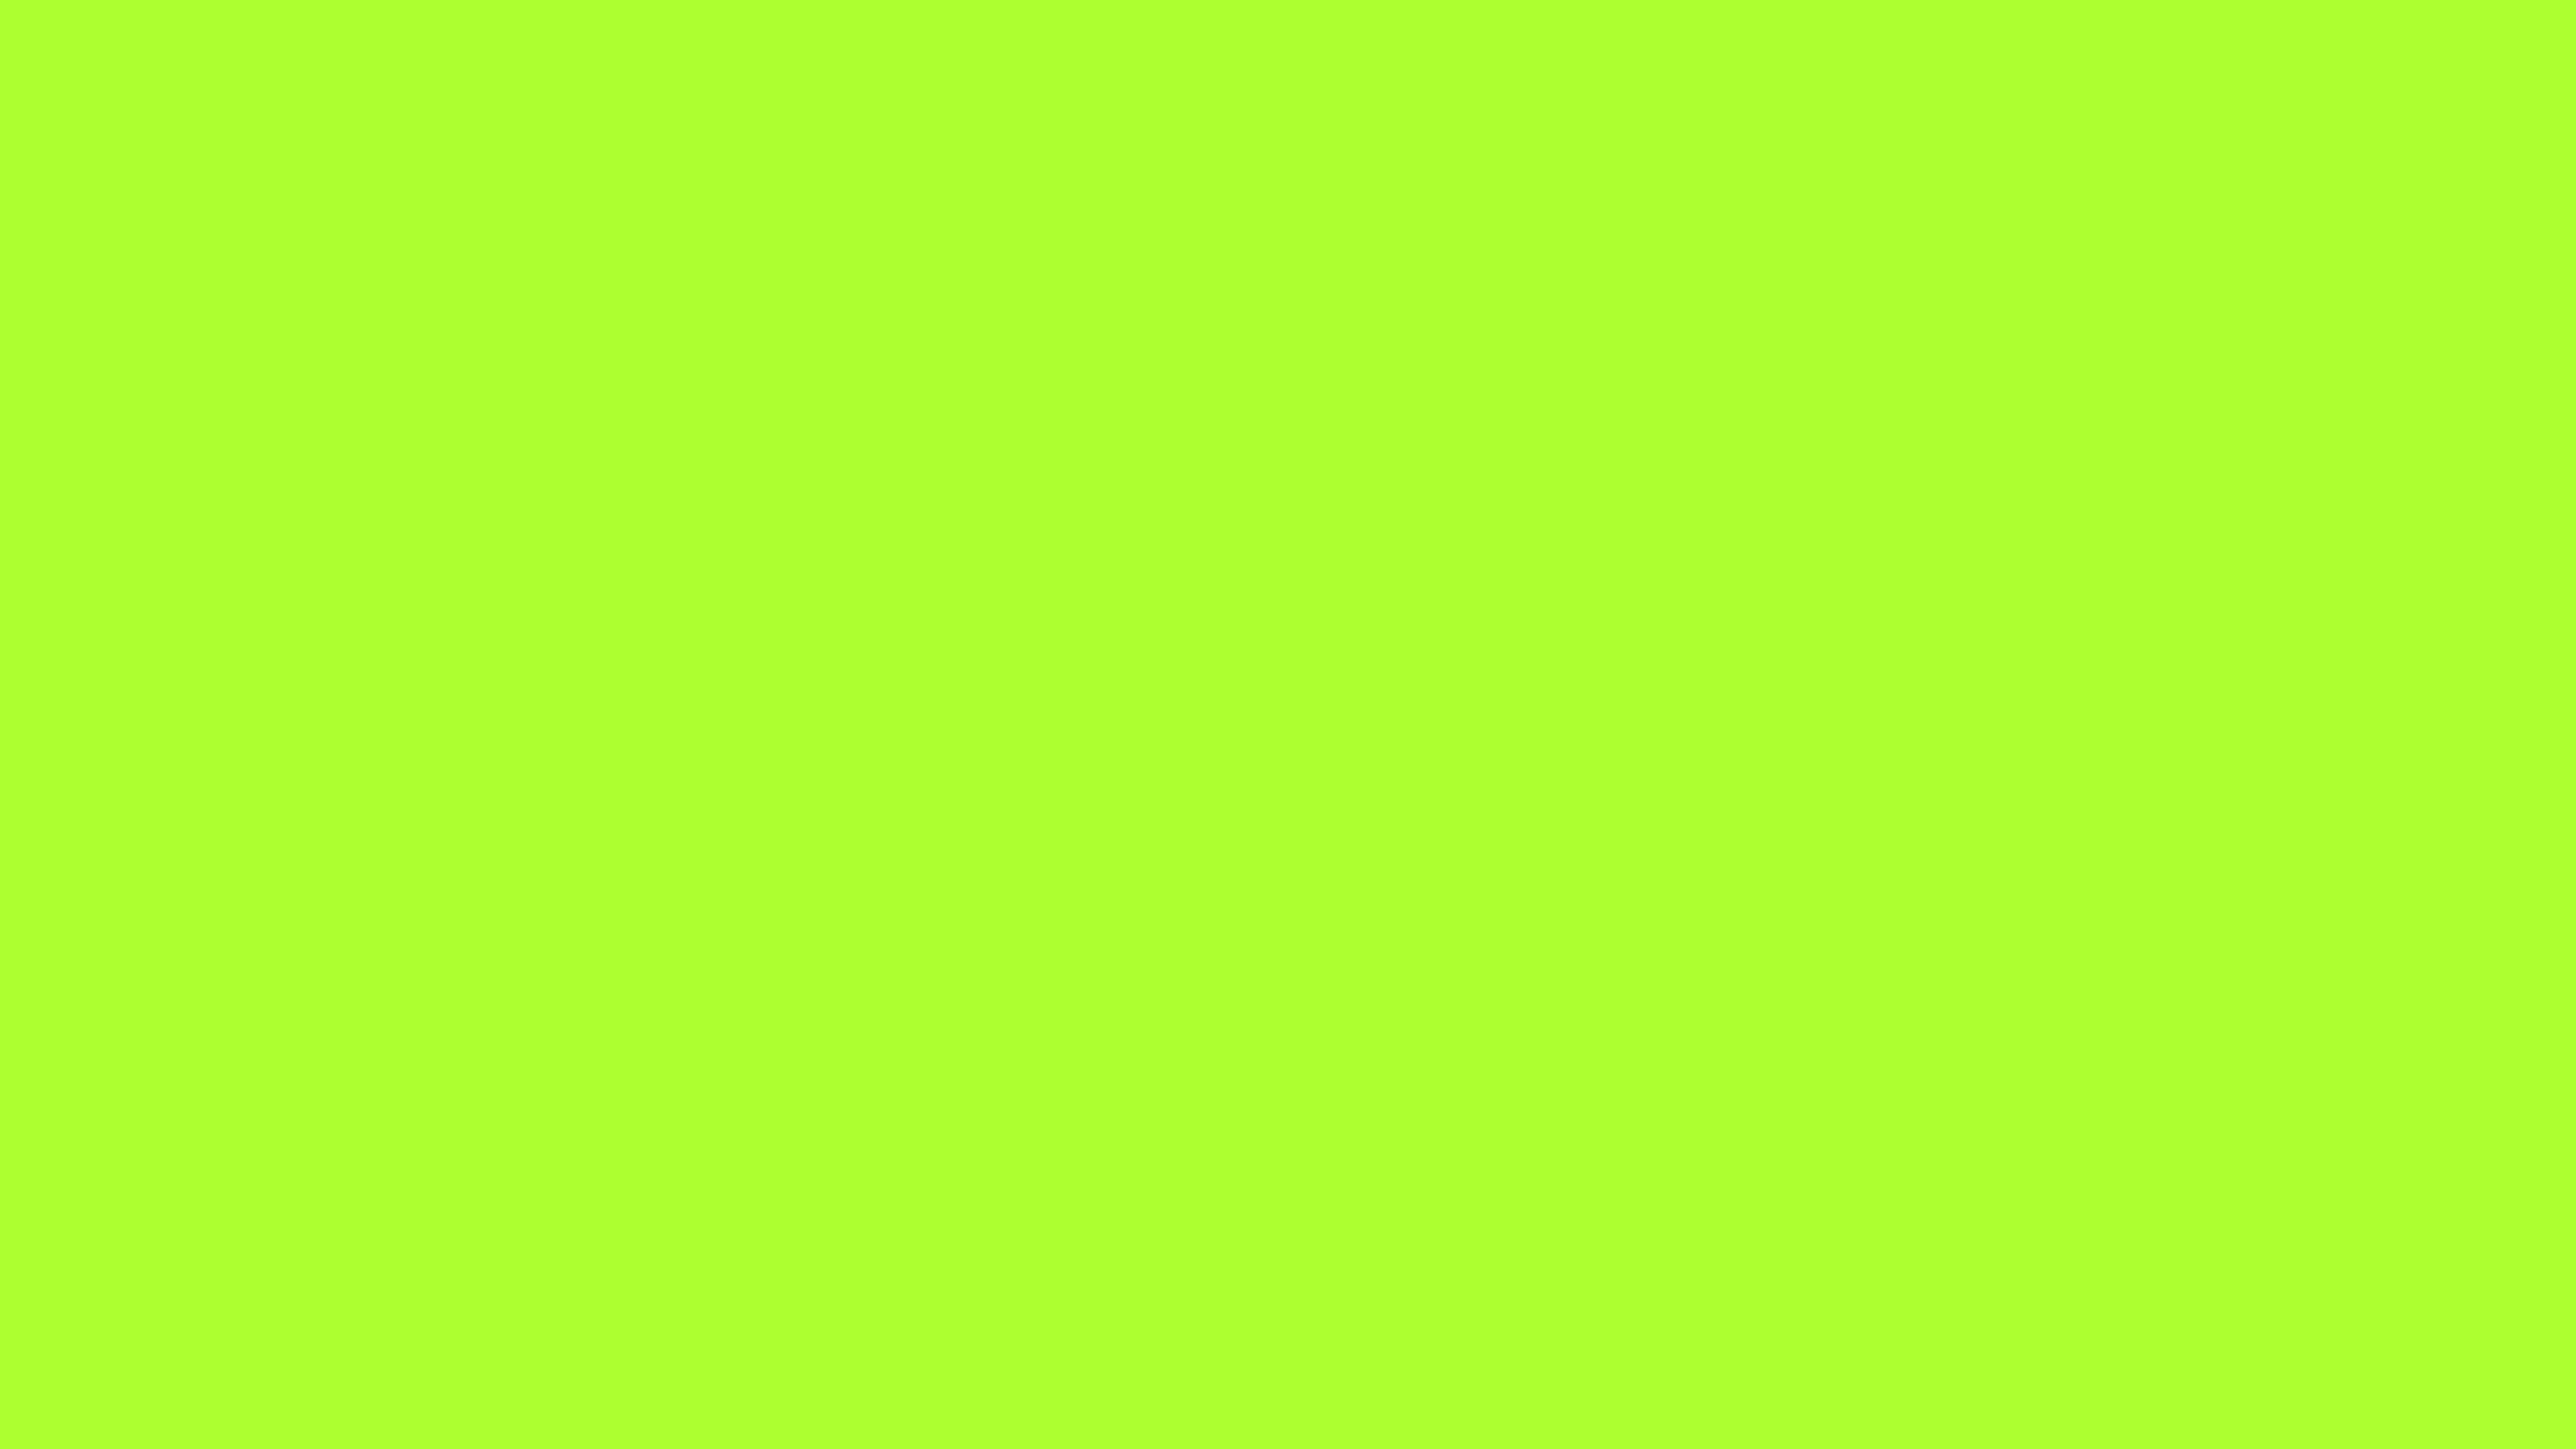 4096x2304 Green-yellow Solid Color Background